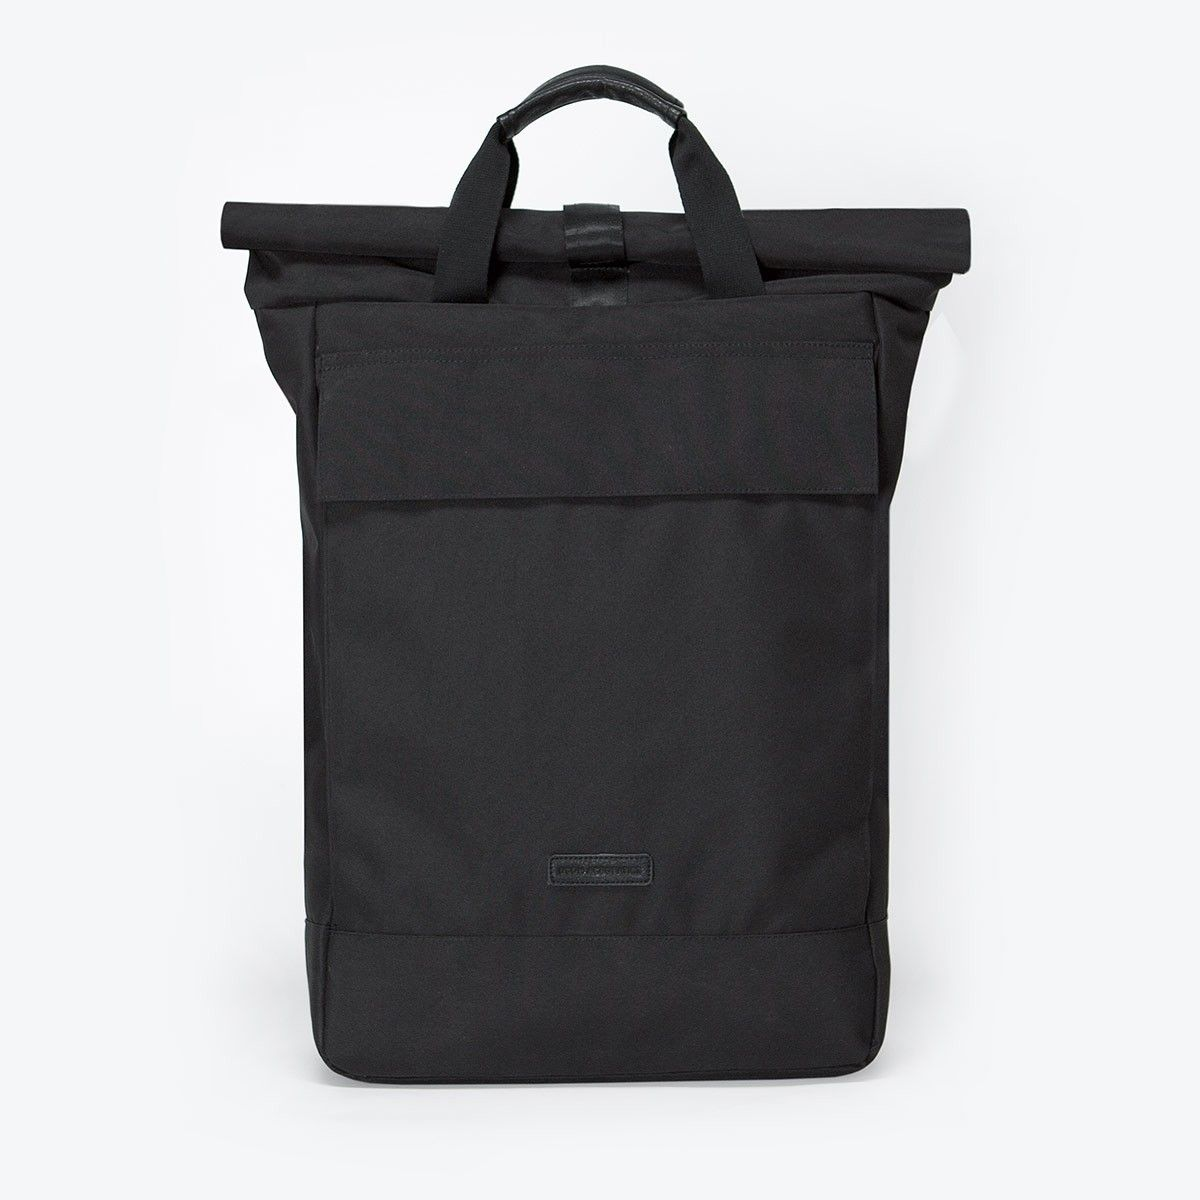 e8a1348395a4 Ucon Acrobatics - Colin Backpack - Minimalistic designed Backpacks from  Berlin